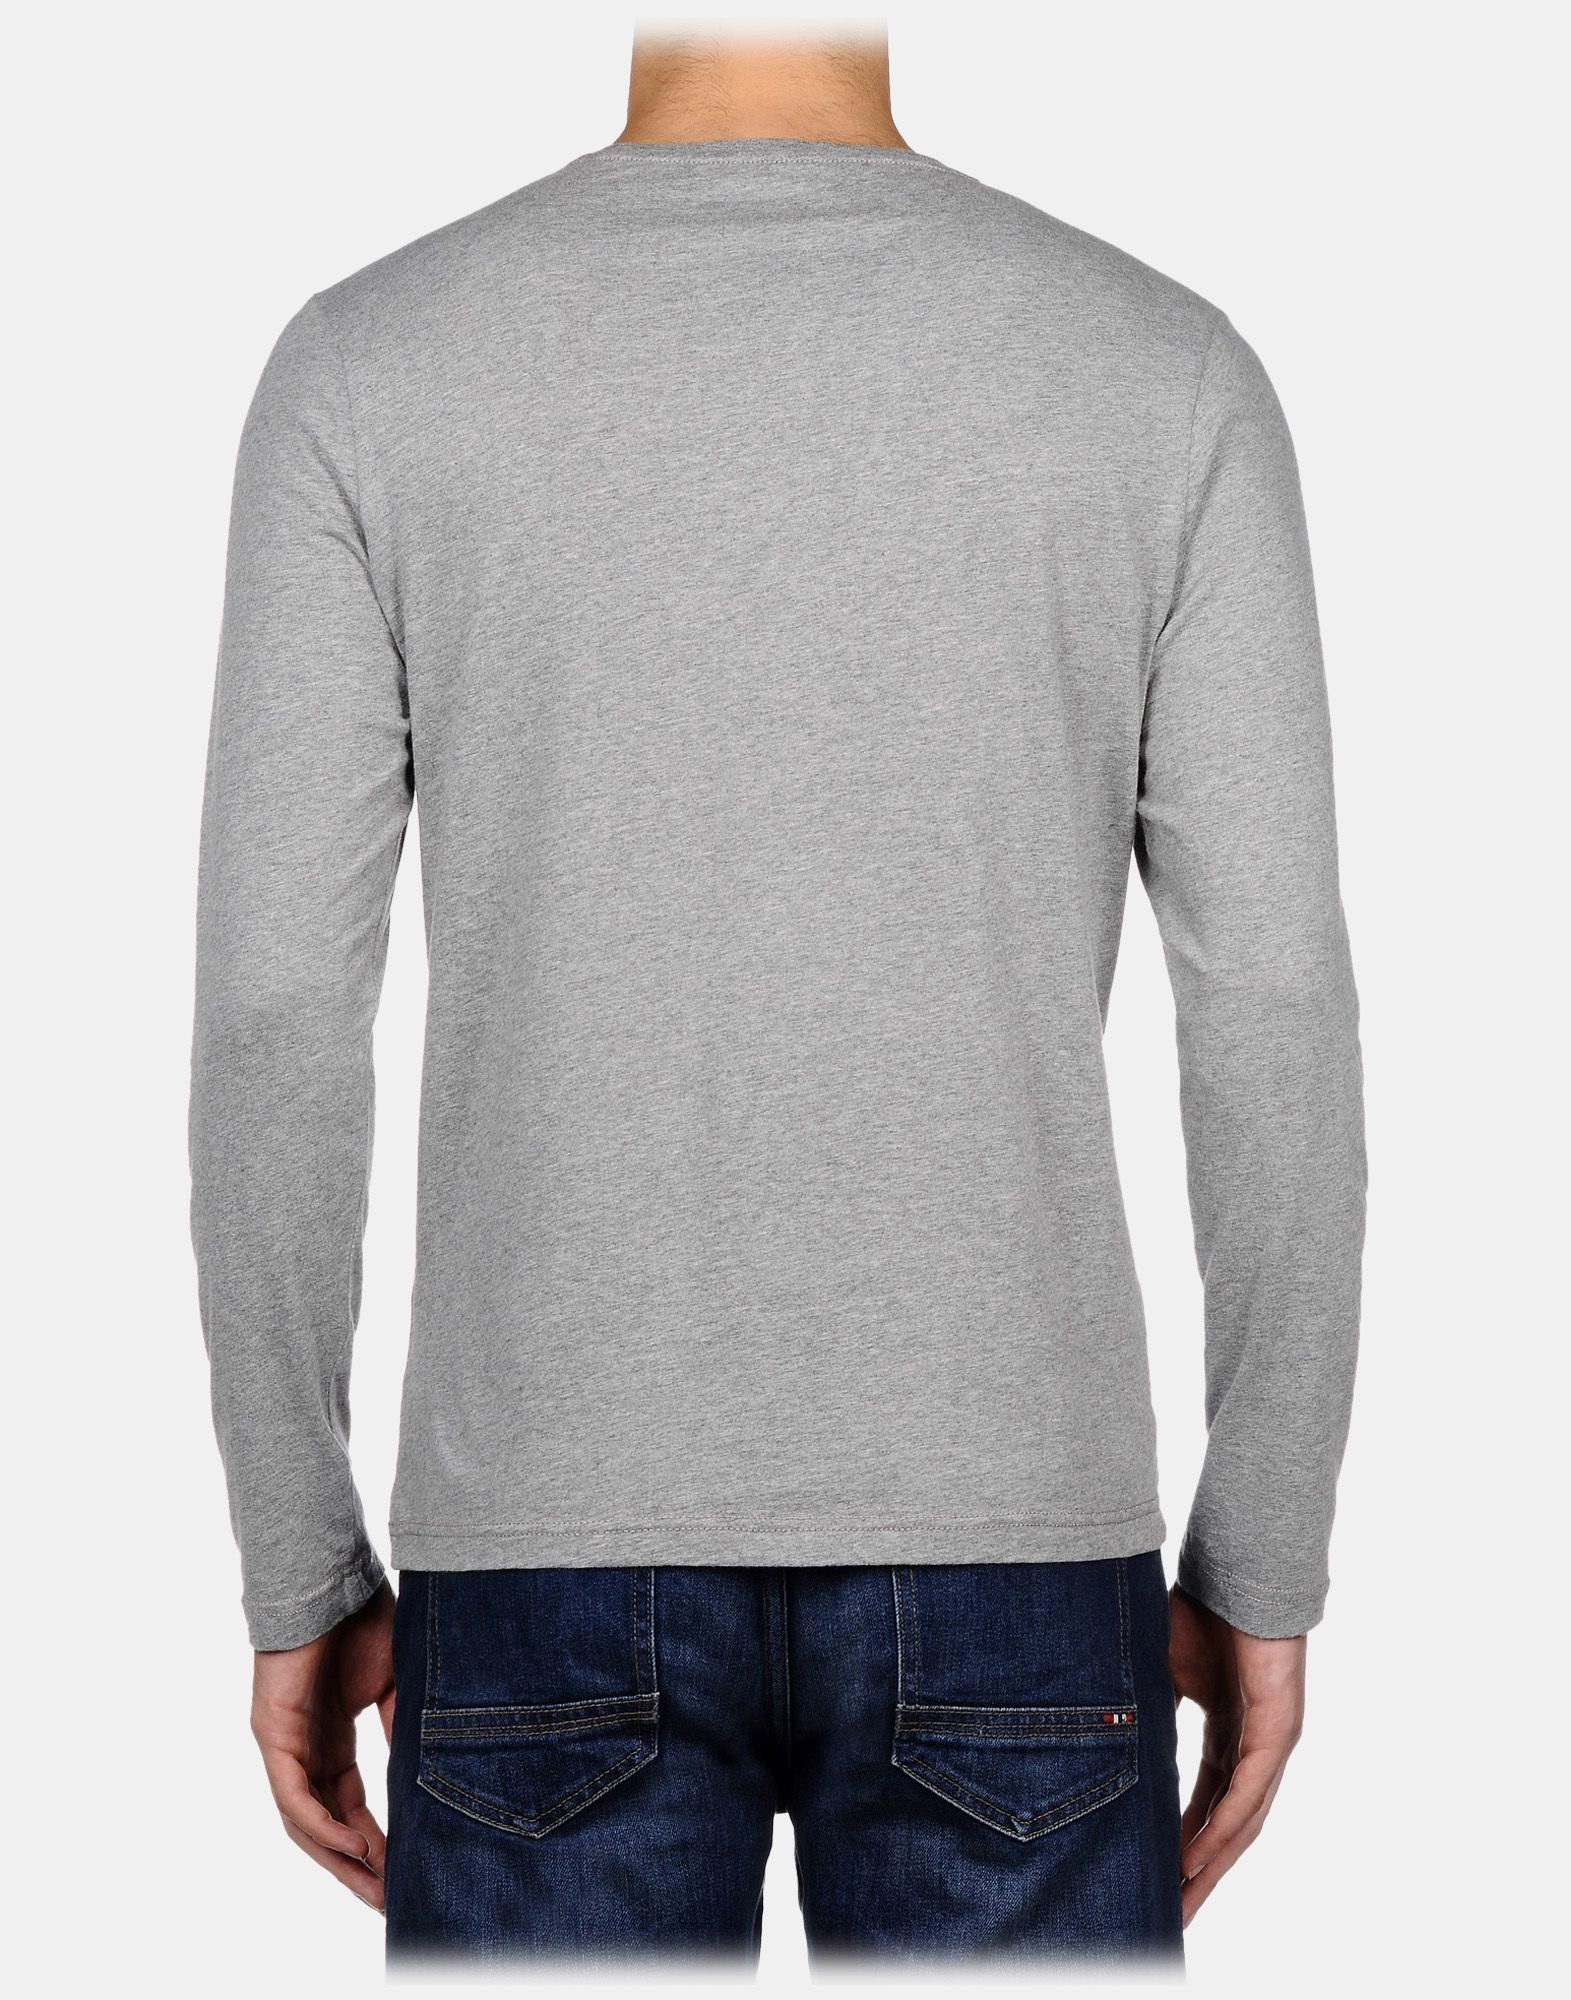 Lyst - Napapijri Long Sleeve T-shirt in Gray for Men